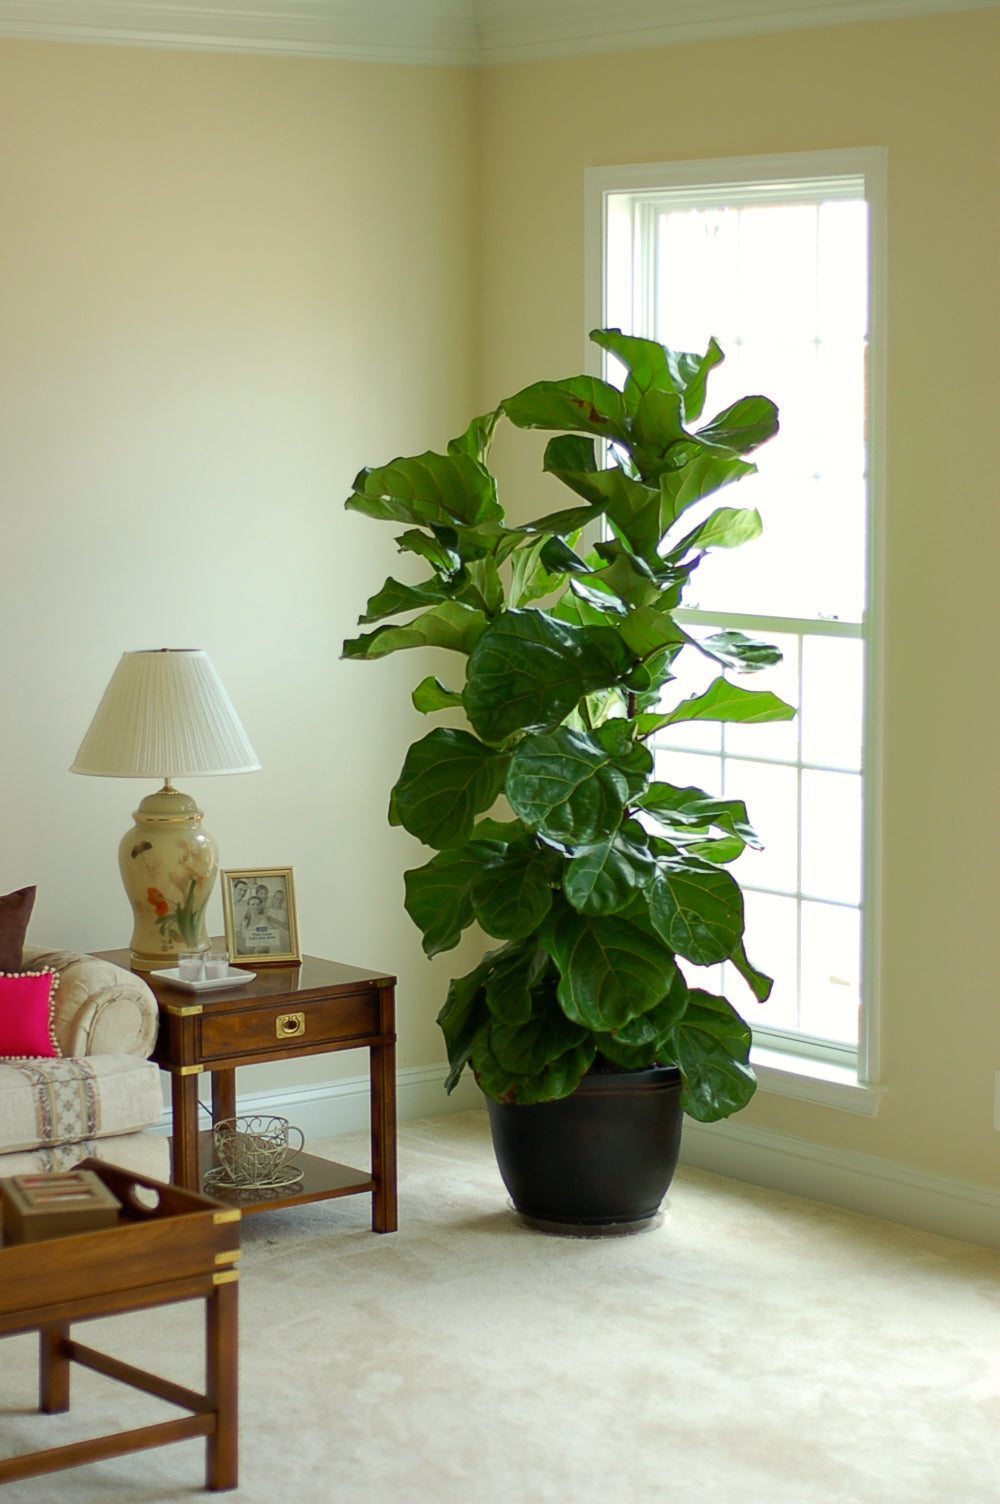 fiddle leaf fig tree 2 - Fiddle Leaf Fig Tree